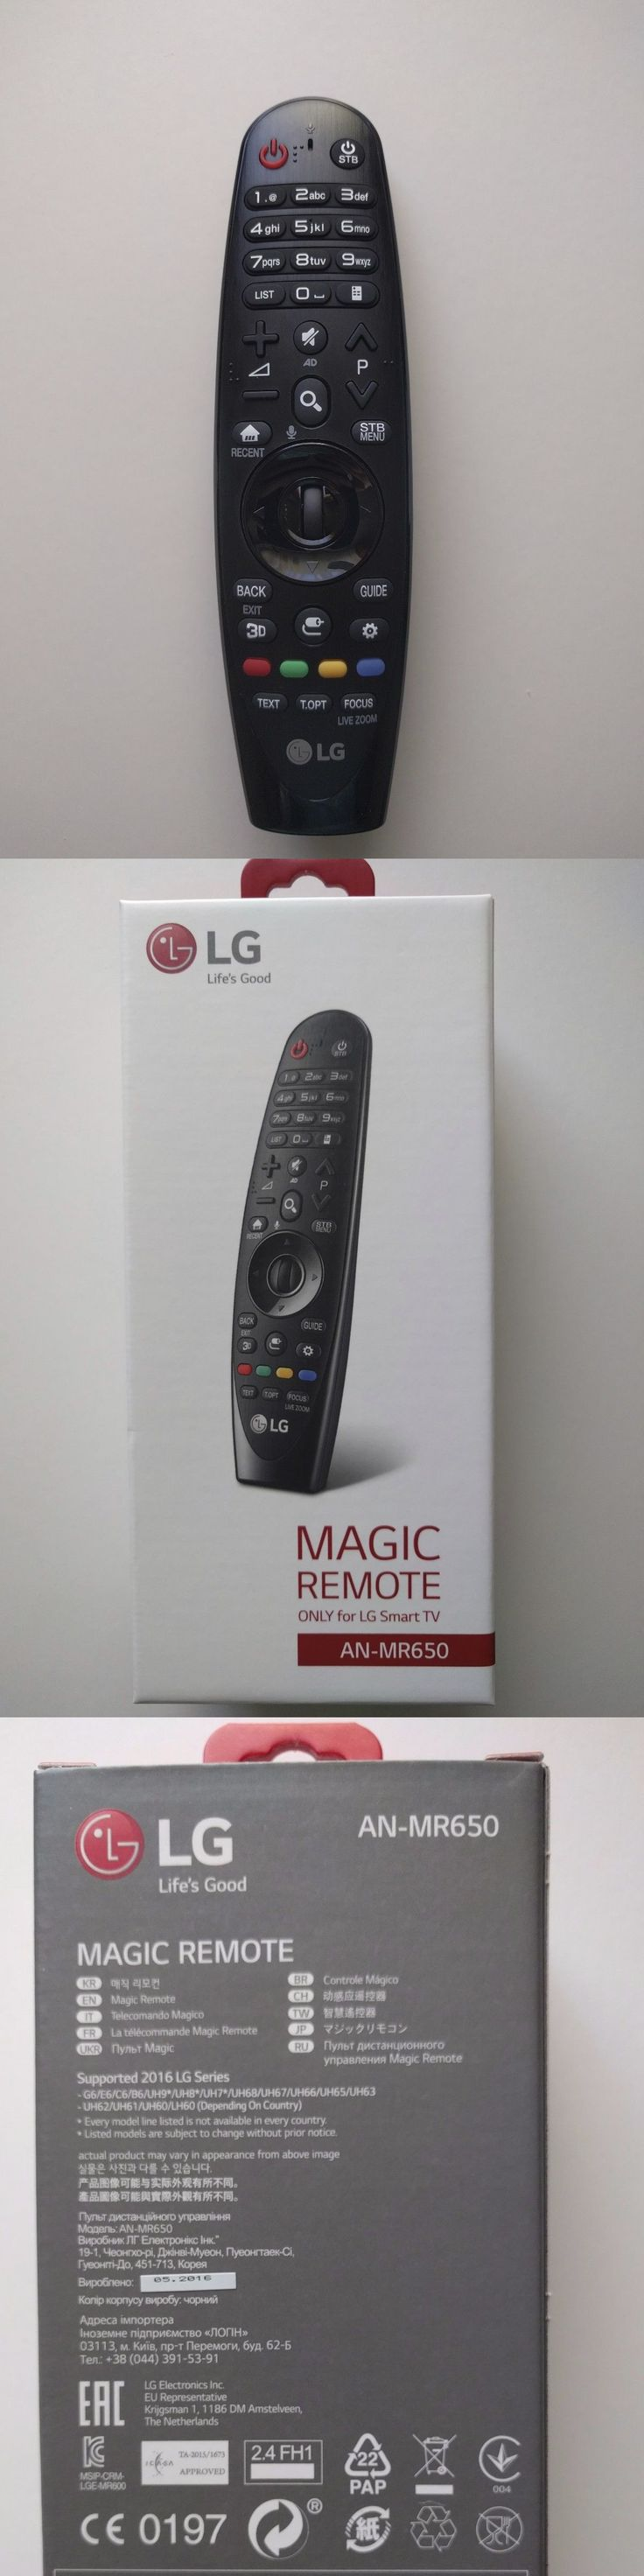 Remote Controls: Brand New Lg An-Mr650 Magic Remote Control For 2016 Lg Tvs Anmr650 -> BUY IT NOW ONLY: $40 on eBay!